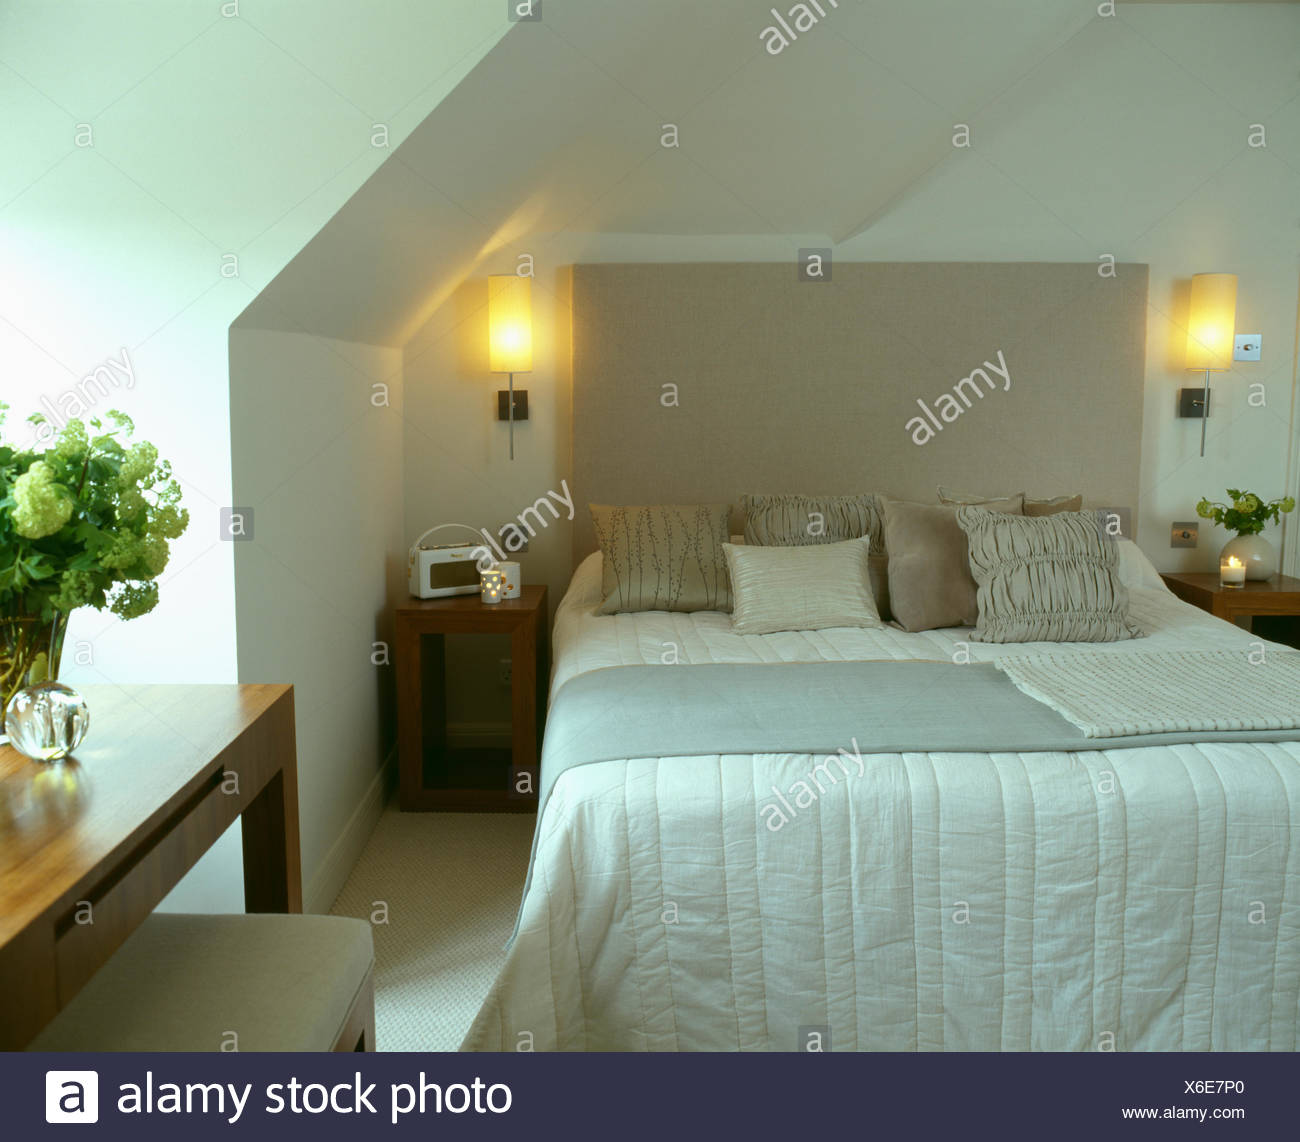 attic lighting. Lighted Wall-lights On Either Side Of Bed With Upholstered Head-board Attic Lighting N